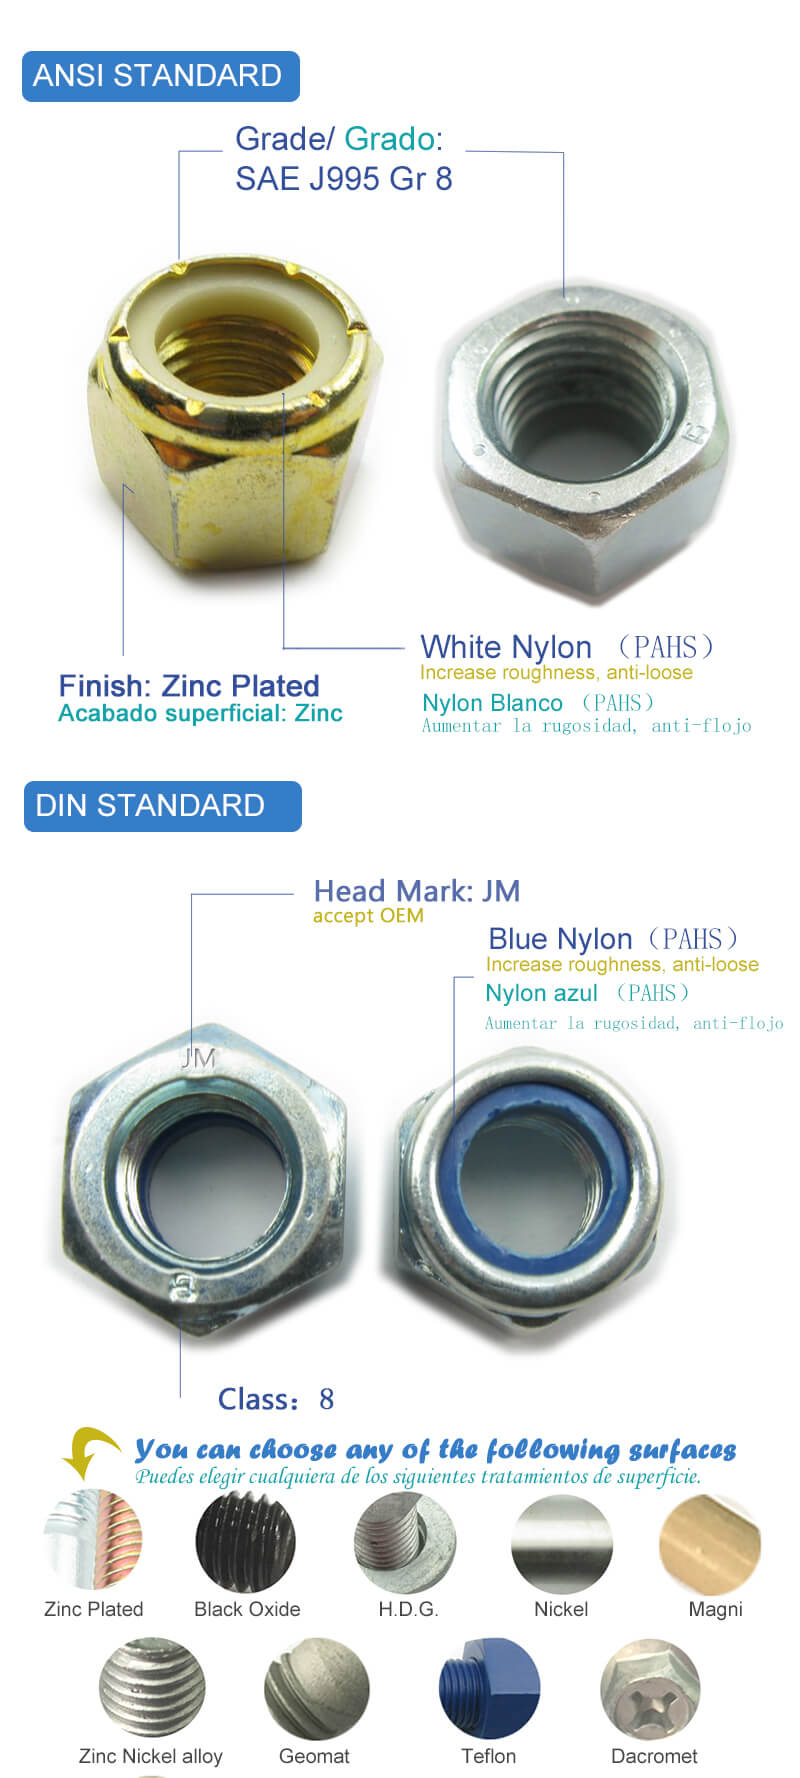 the standard and surface of Nylon Insert Lock Nut